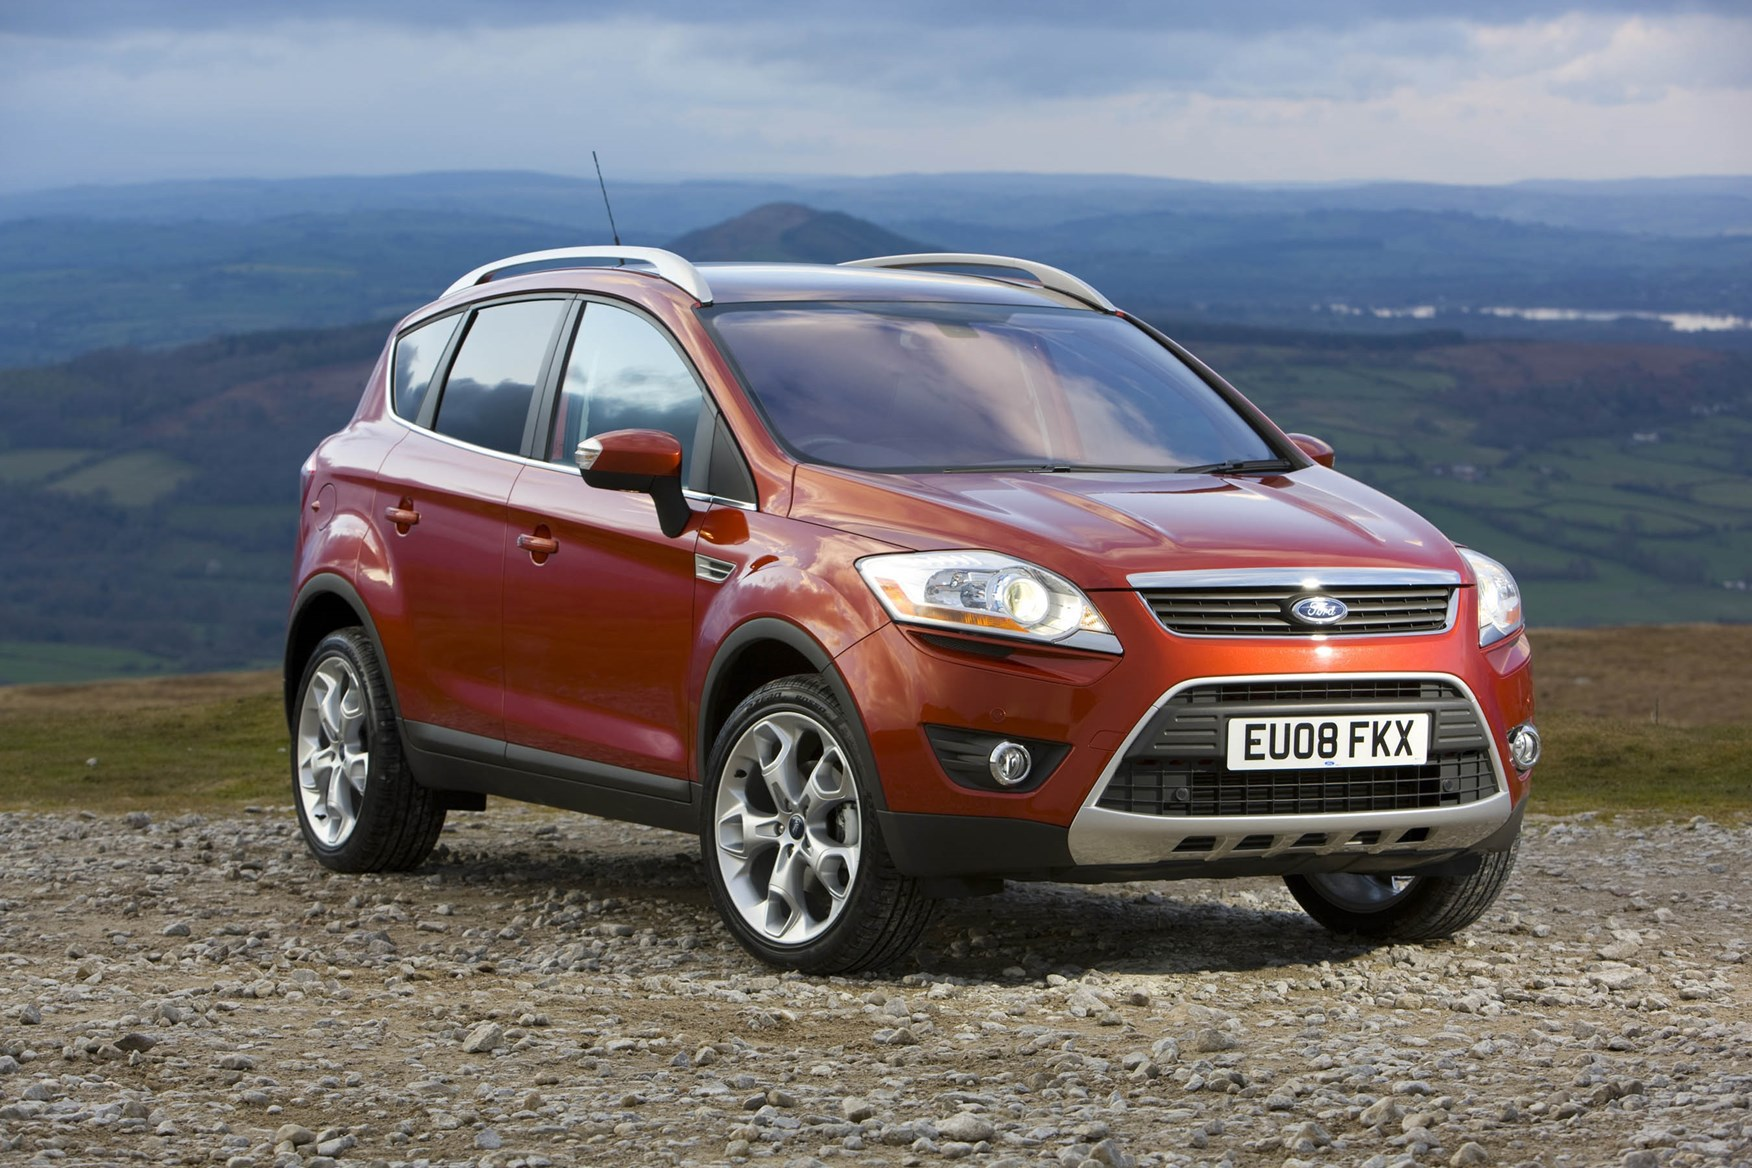 Car Ford Kuga: reviews of owners, specifications and features 25